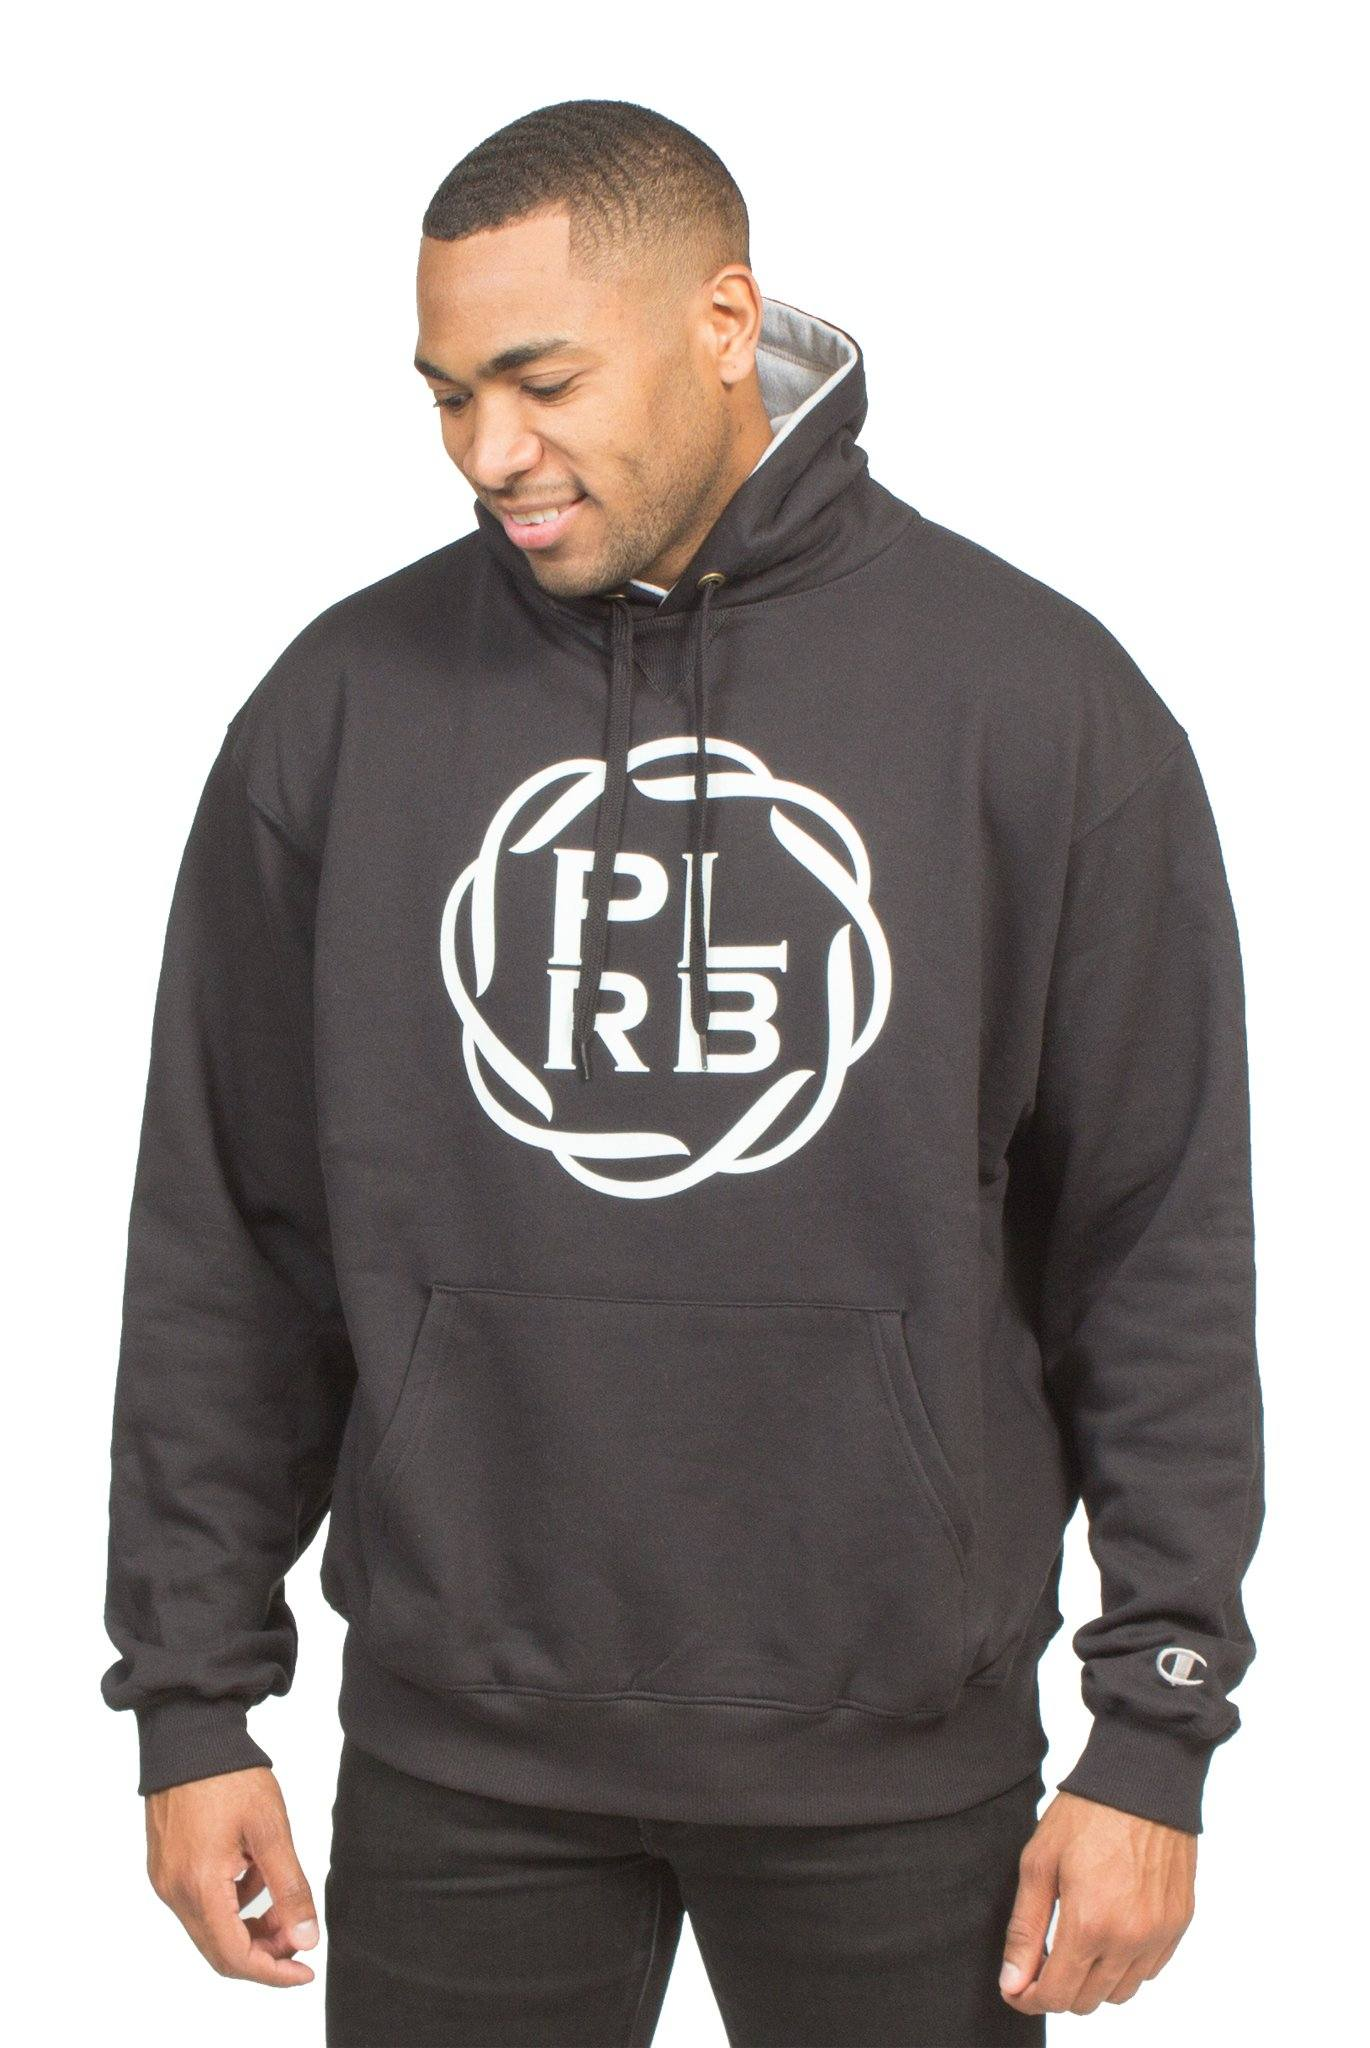 CHAMPION BIG FACE PLRB OVERSIZED HOODIE IN BLACK | Poor Little Rich Boy Clothing